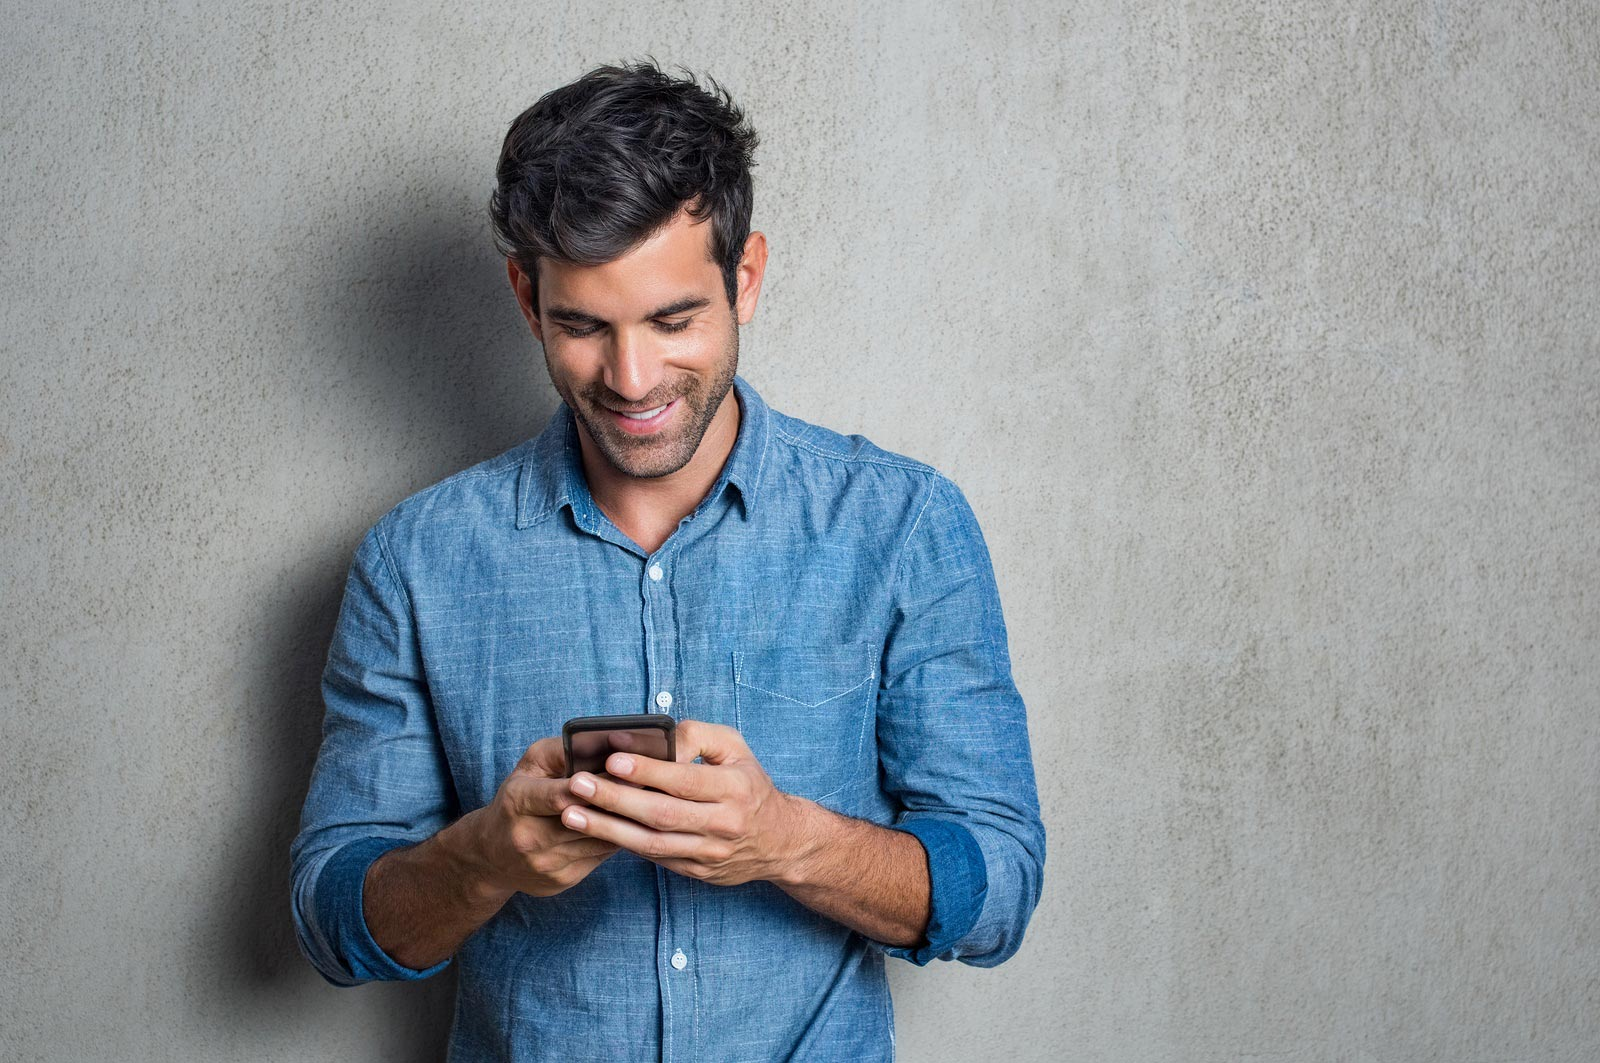 bigstock-Young-man-texting-message-on-s-203276239-1